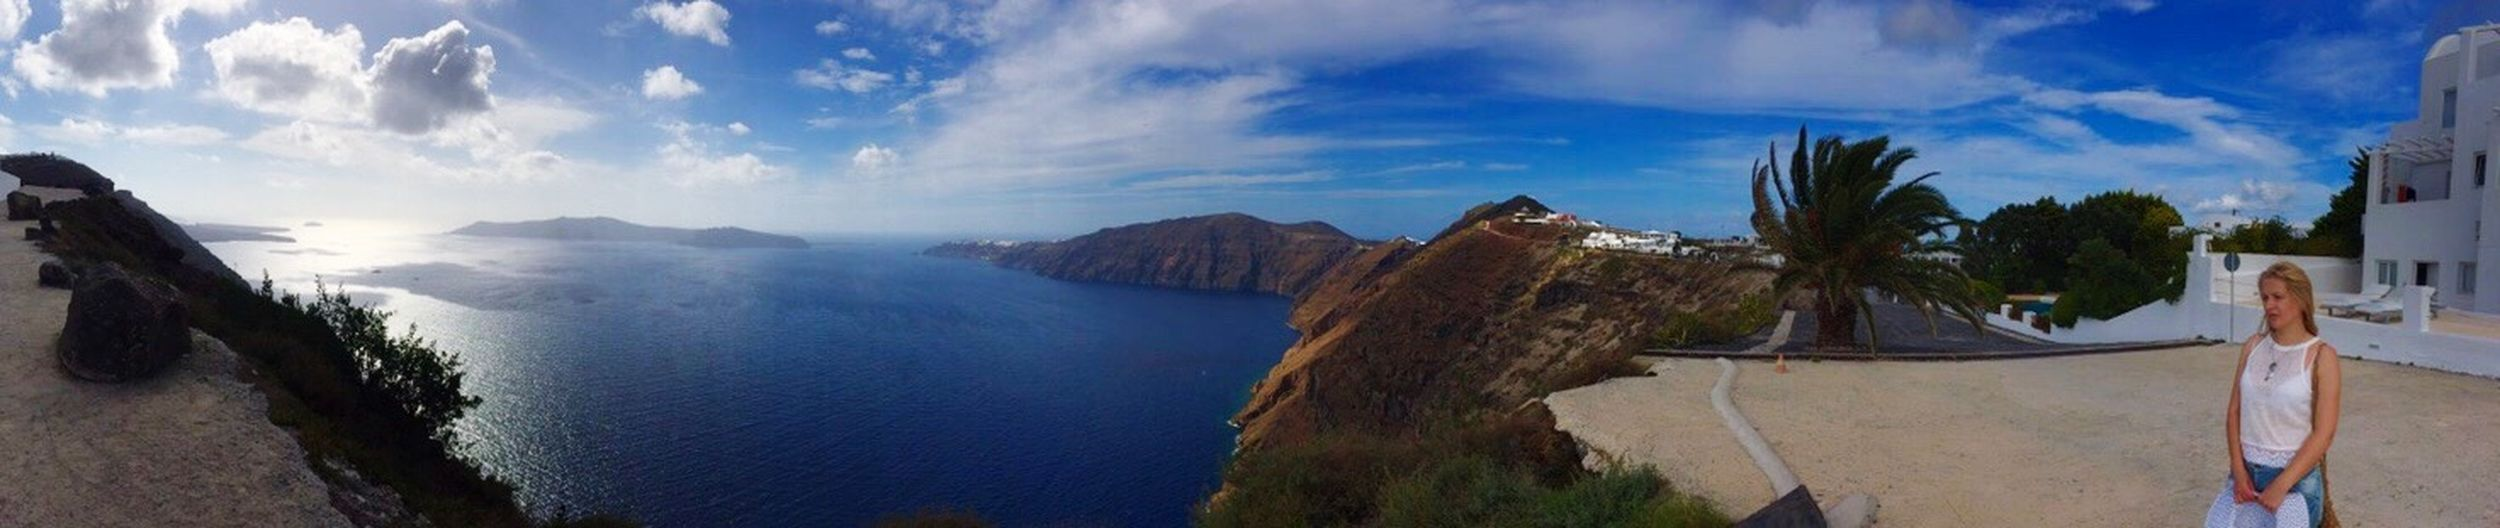 Santorini Greece Traveling From Santorini With Love Beautiful Surroundings Panoramas Panoramas Of Santorini